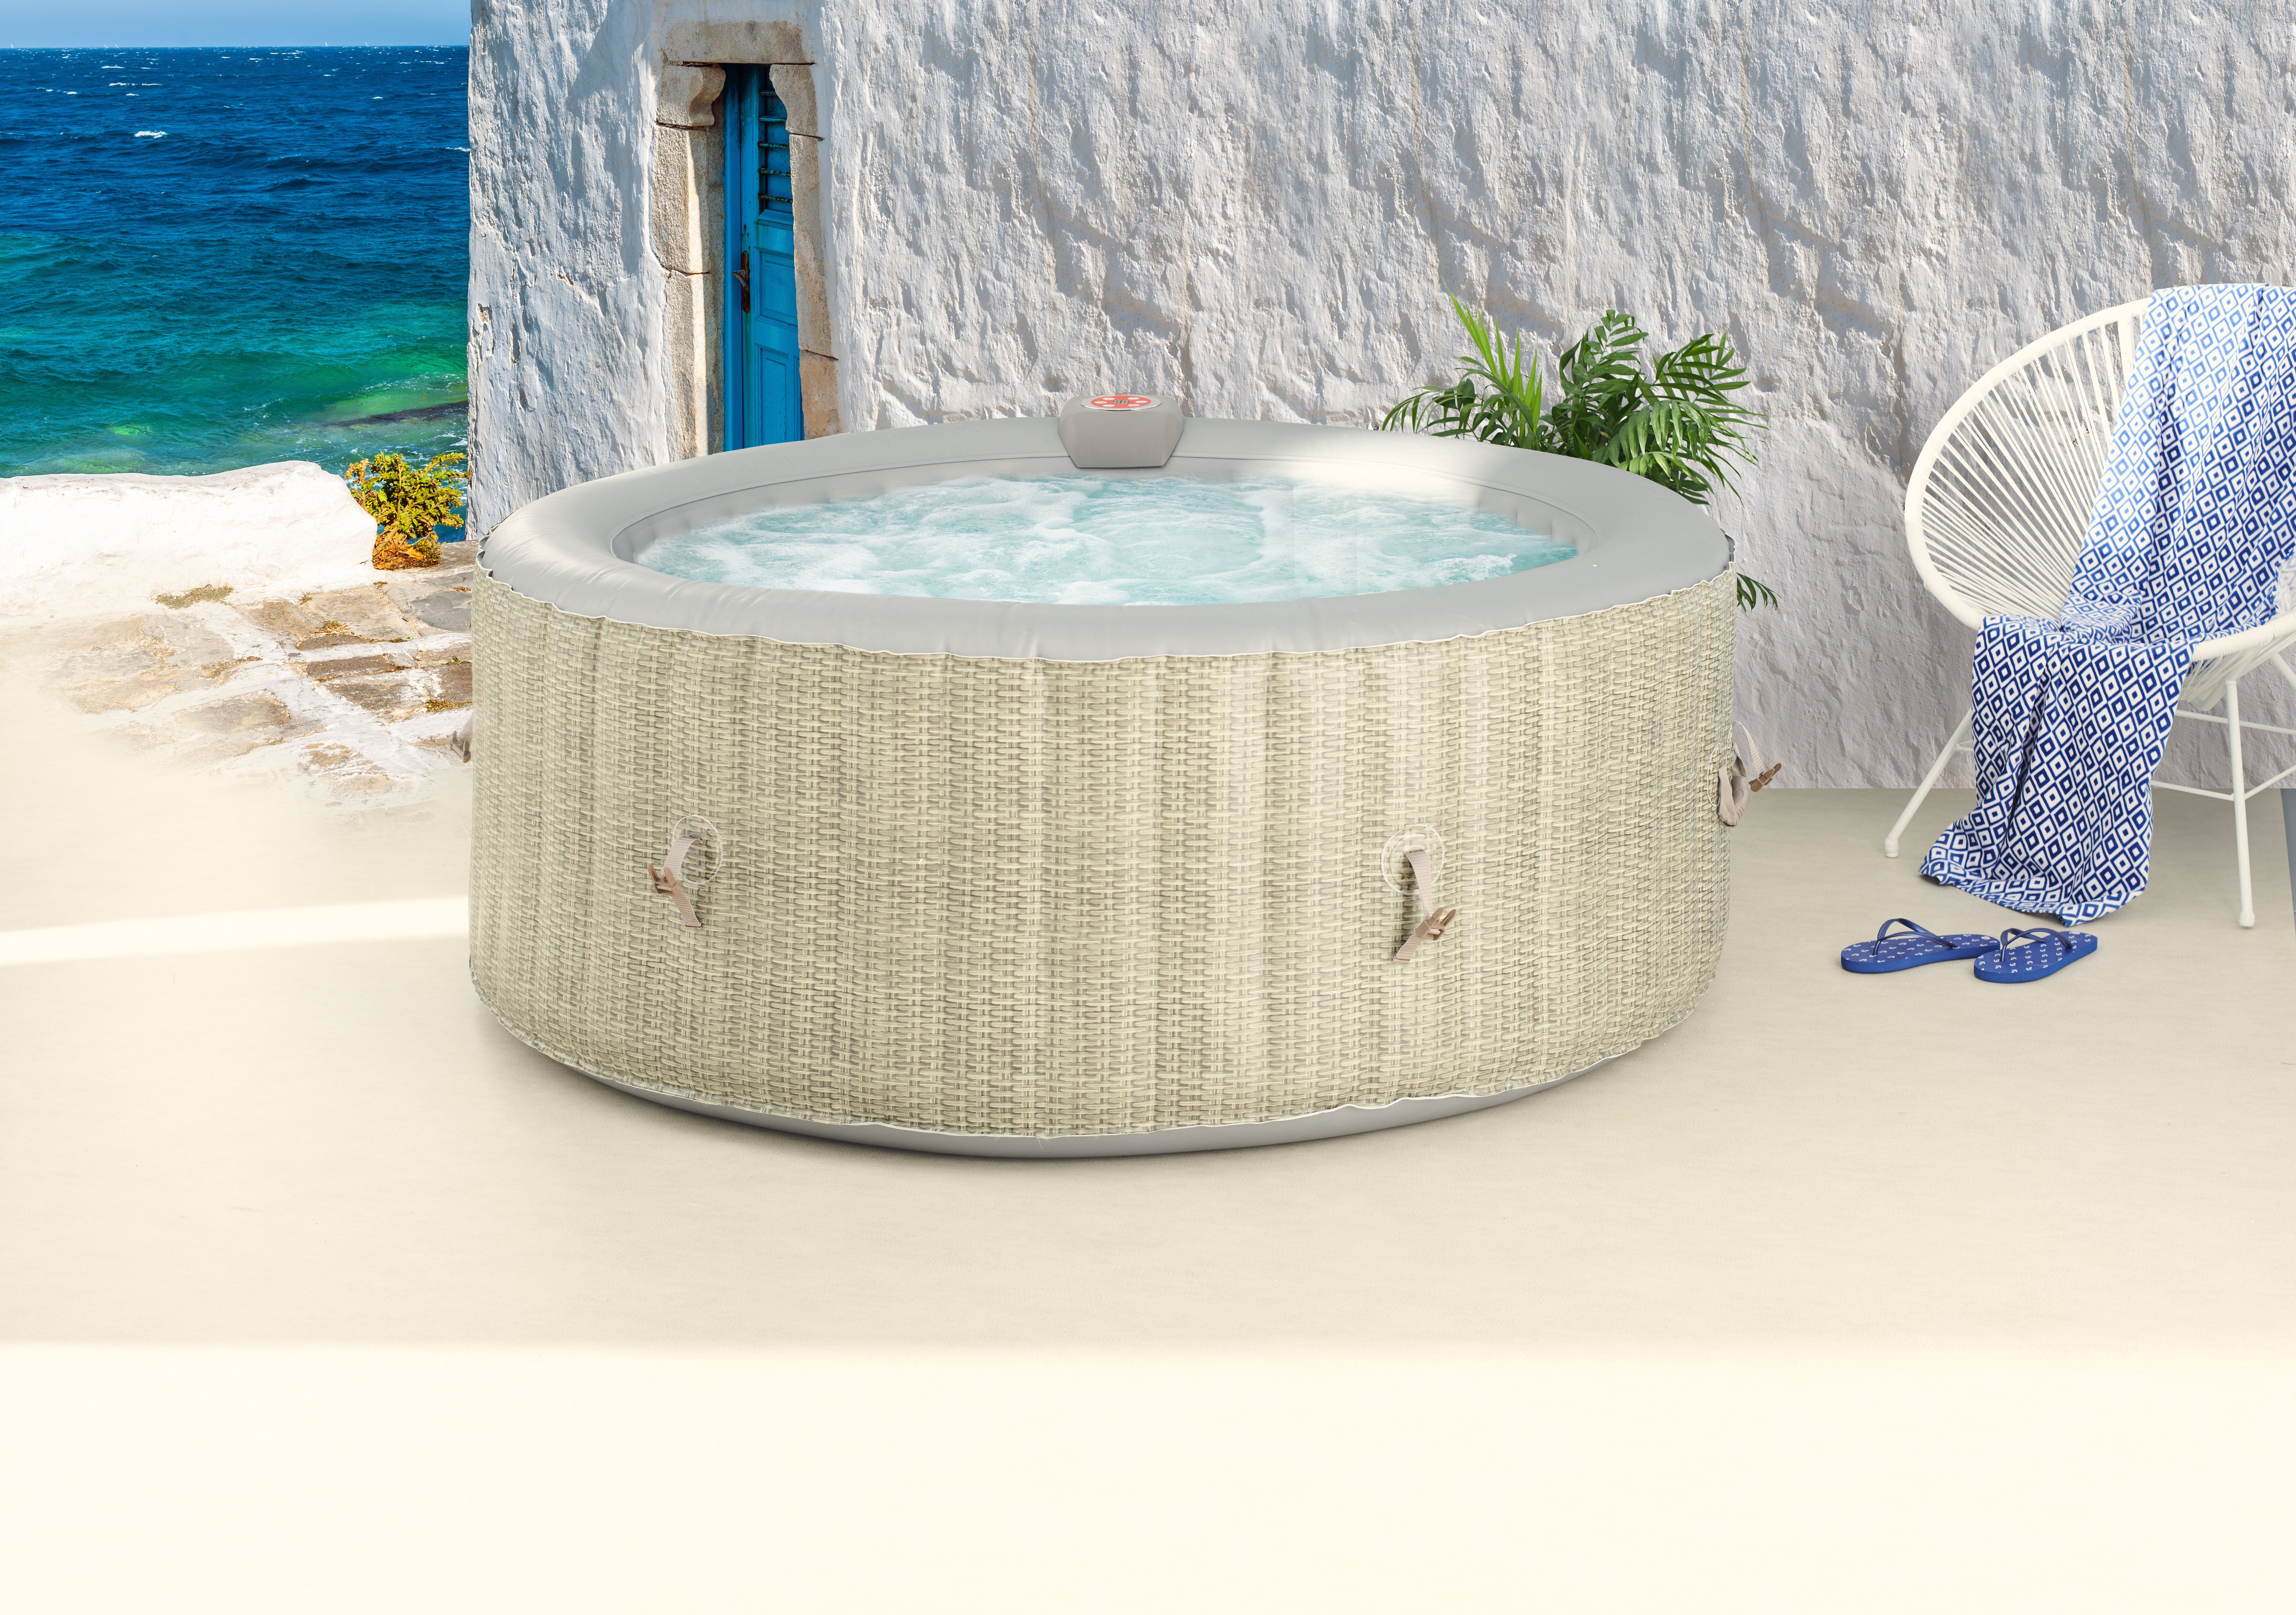 Spa Jacuzzi Ou Mini Piscine Spa Gonflable Jacuzzi